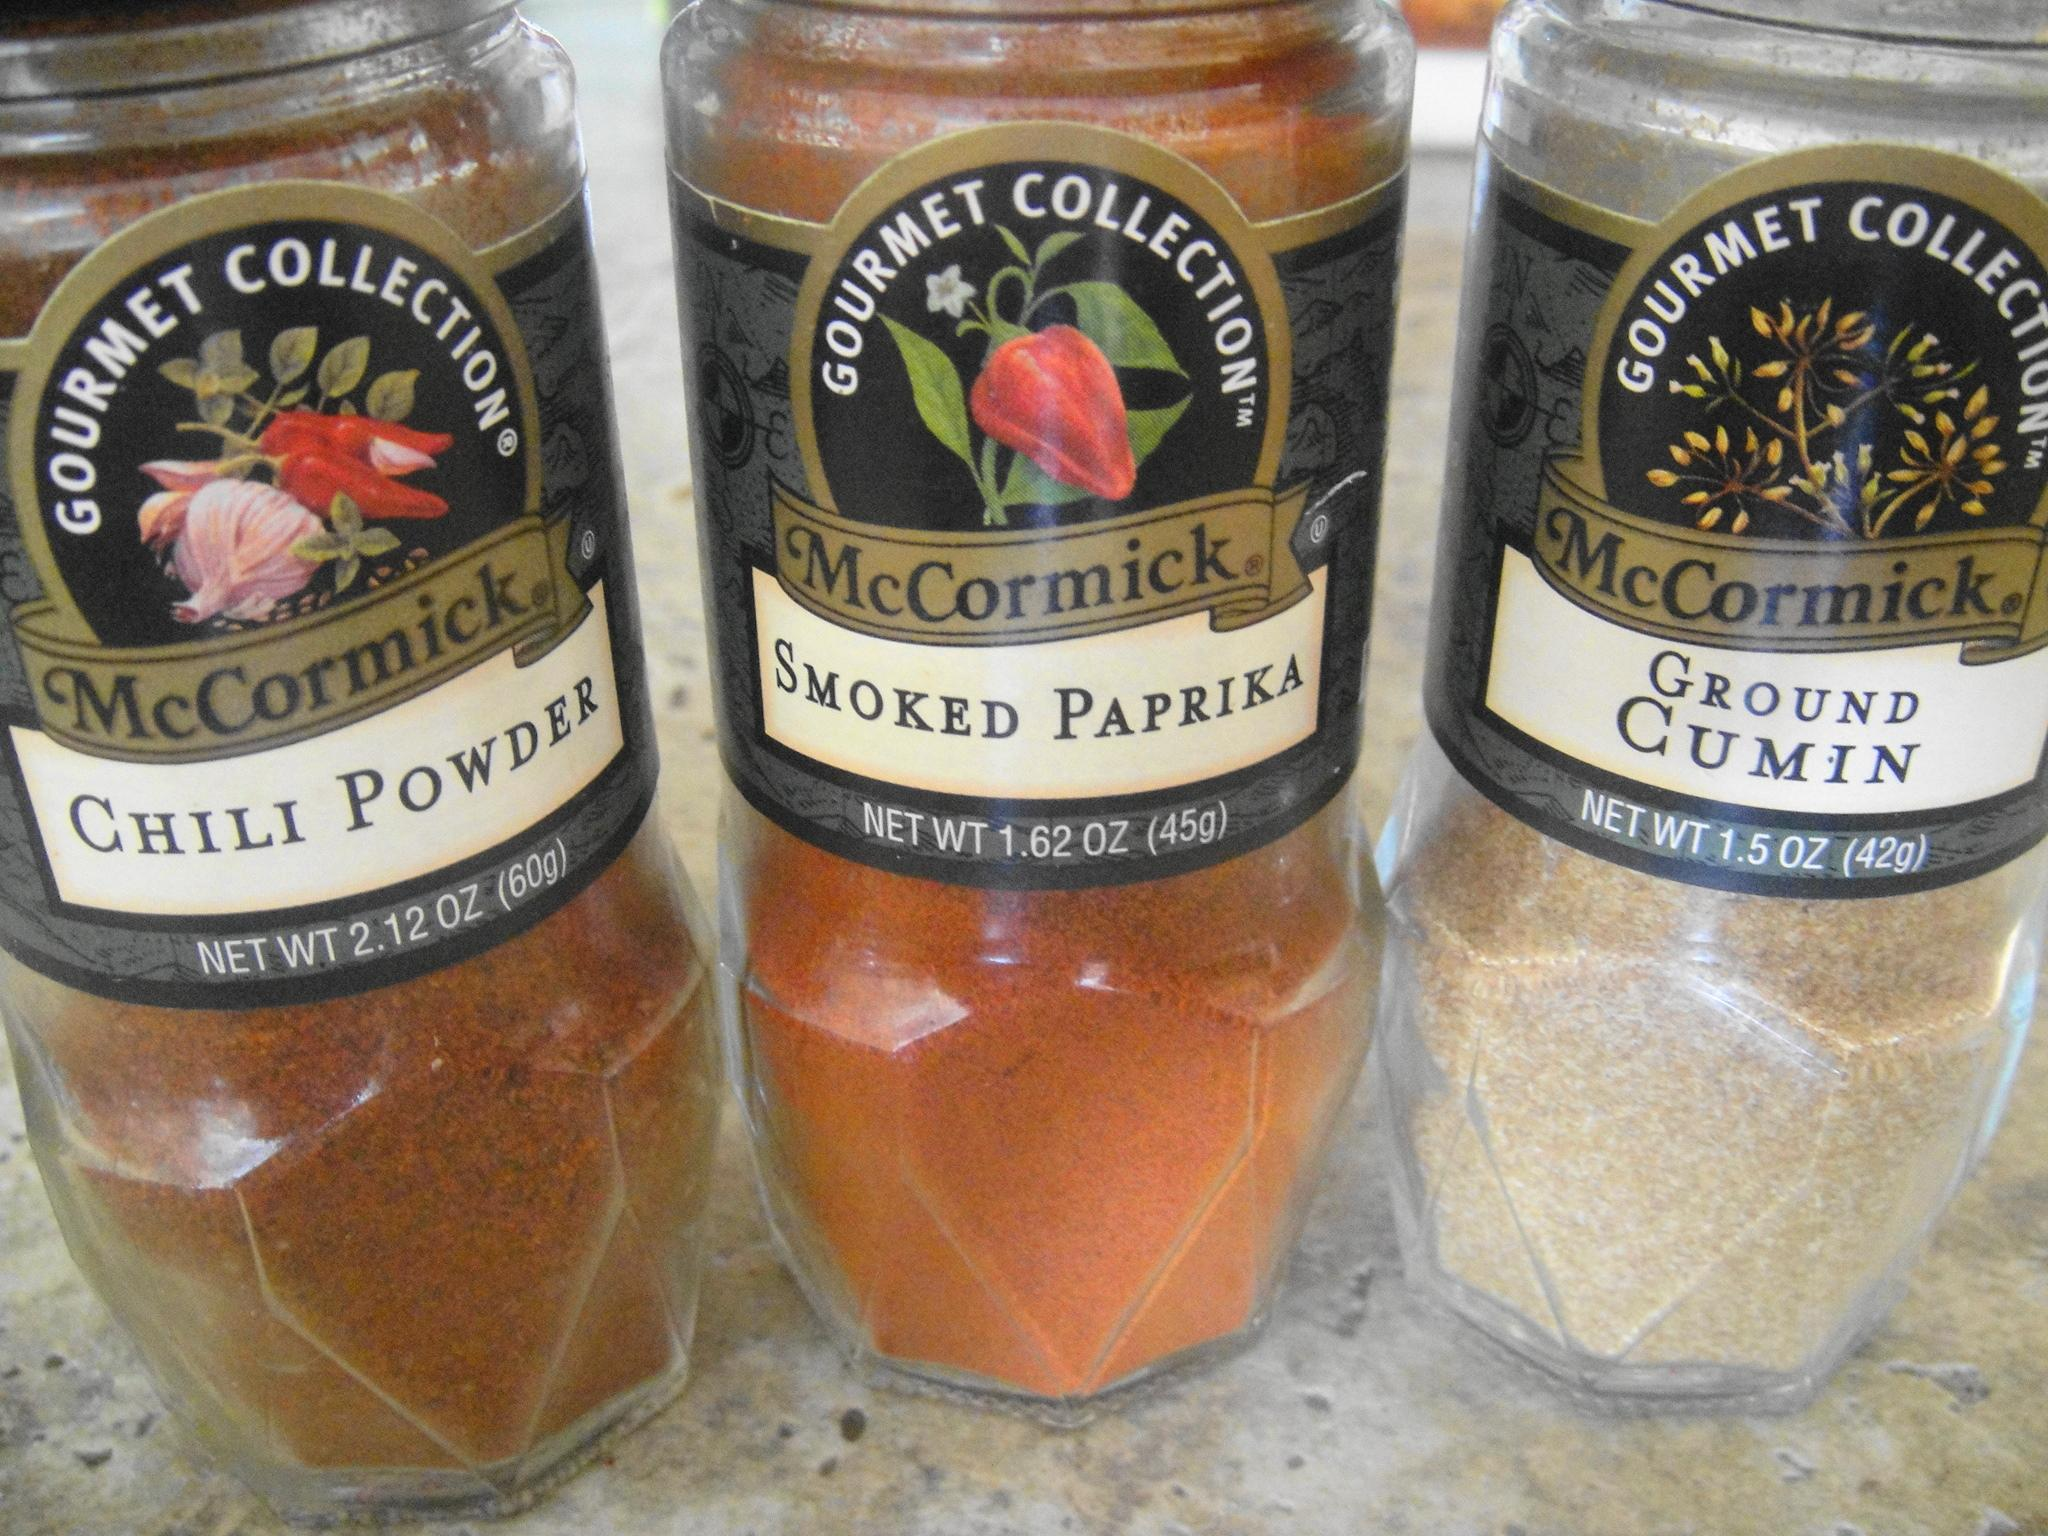 cumin smoked paprika chili powder bottles